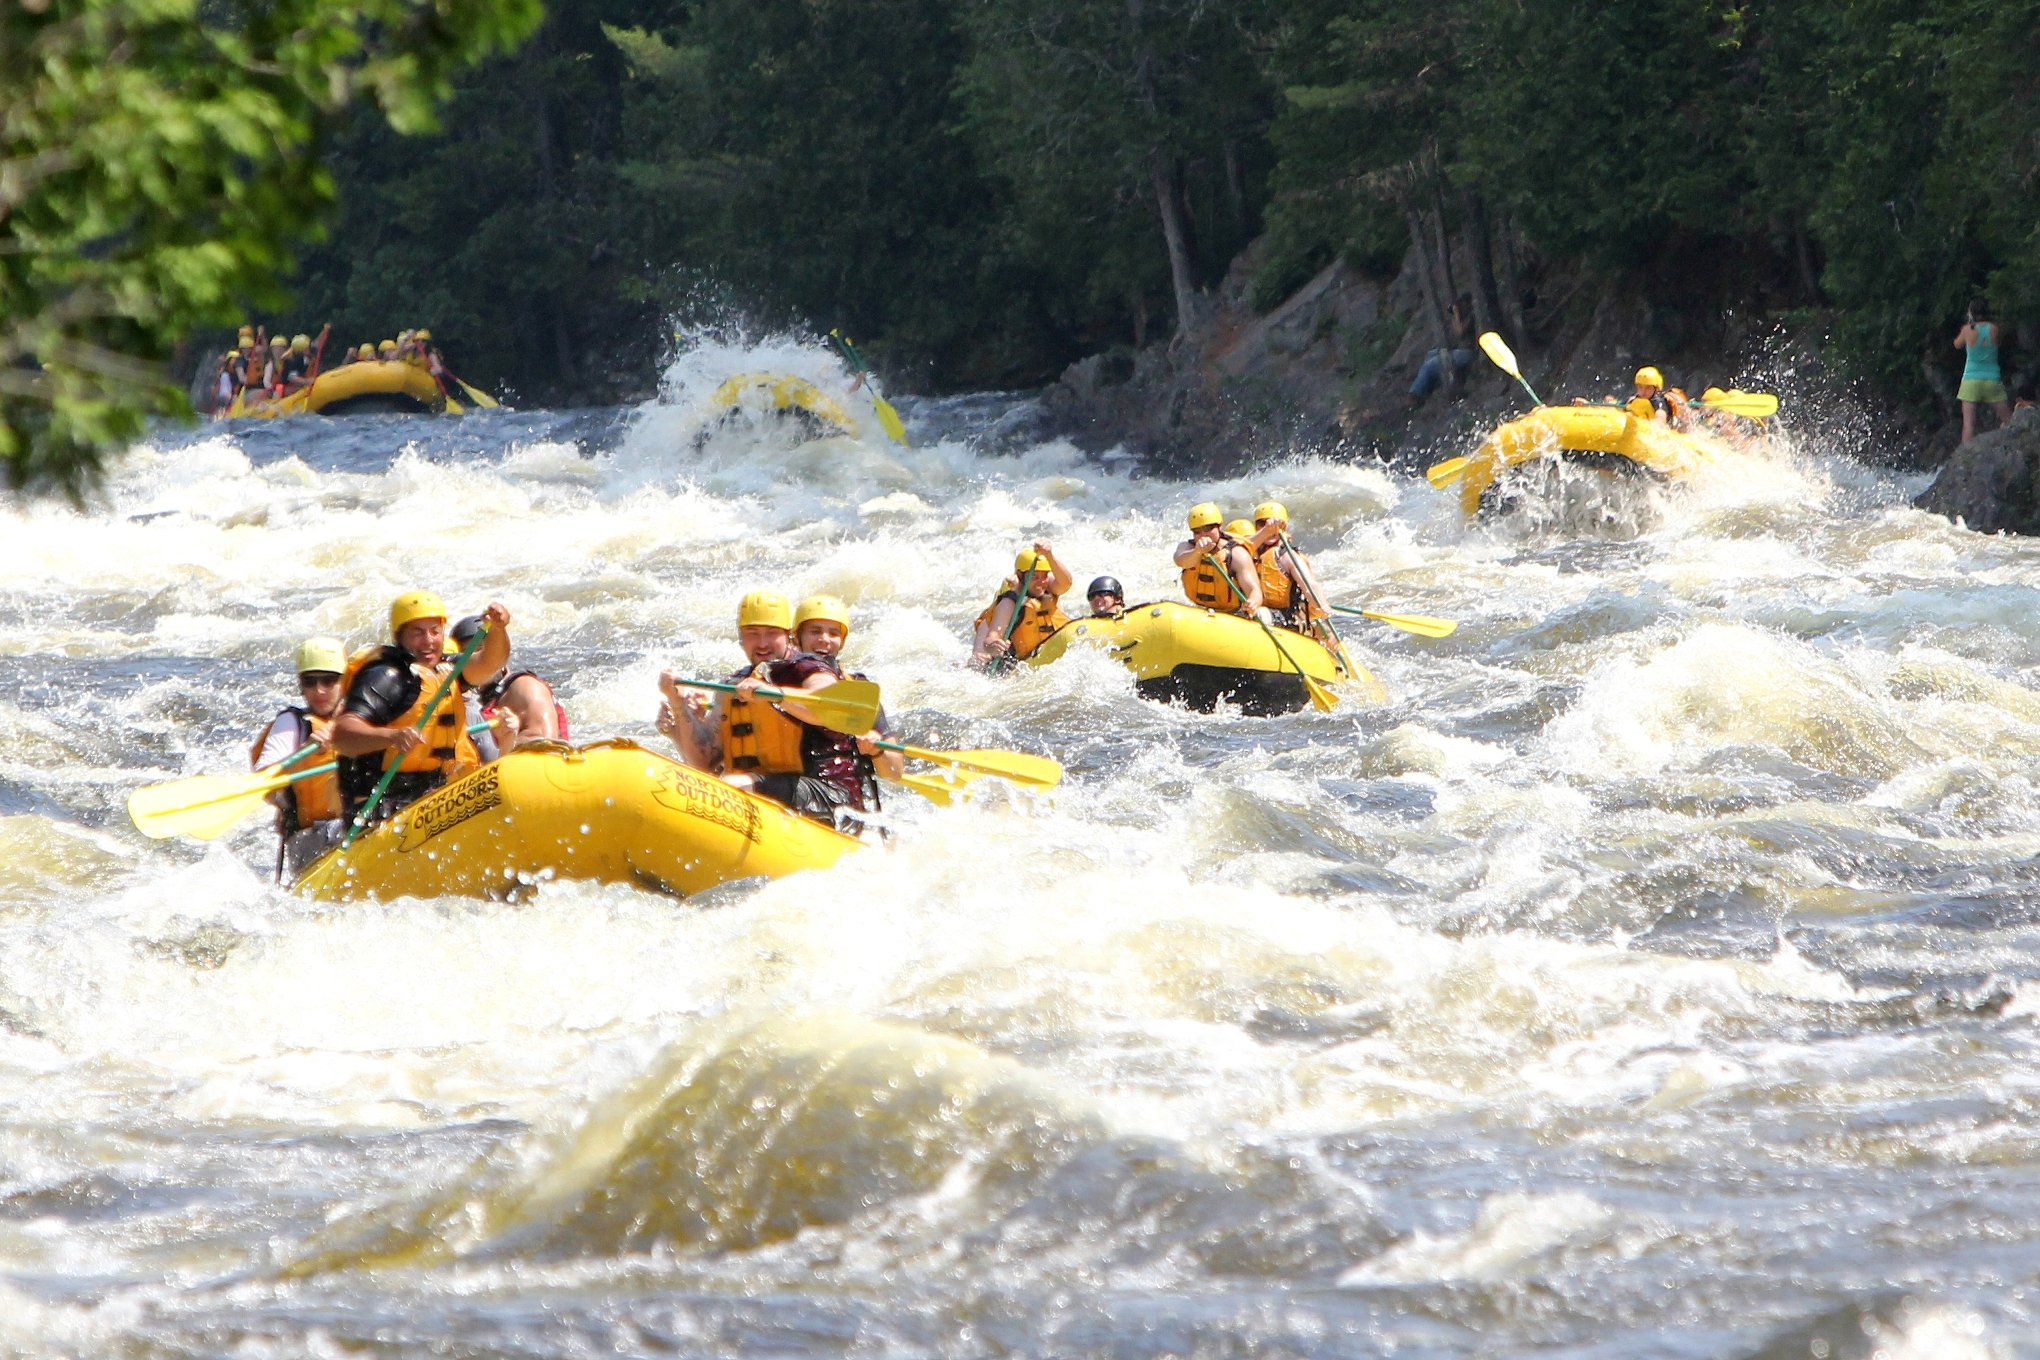 White water fun on the Kennebec River